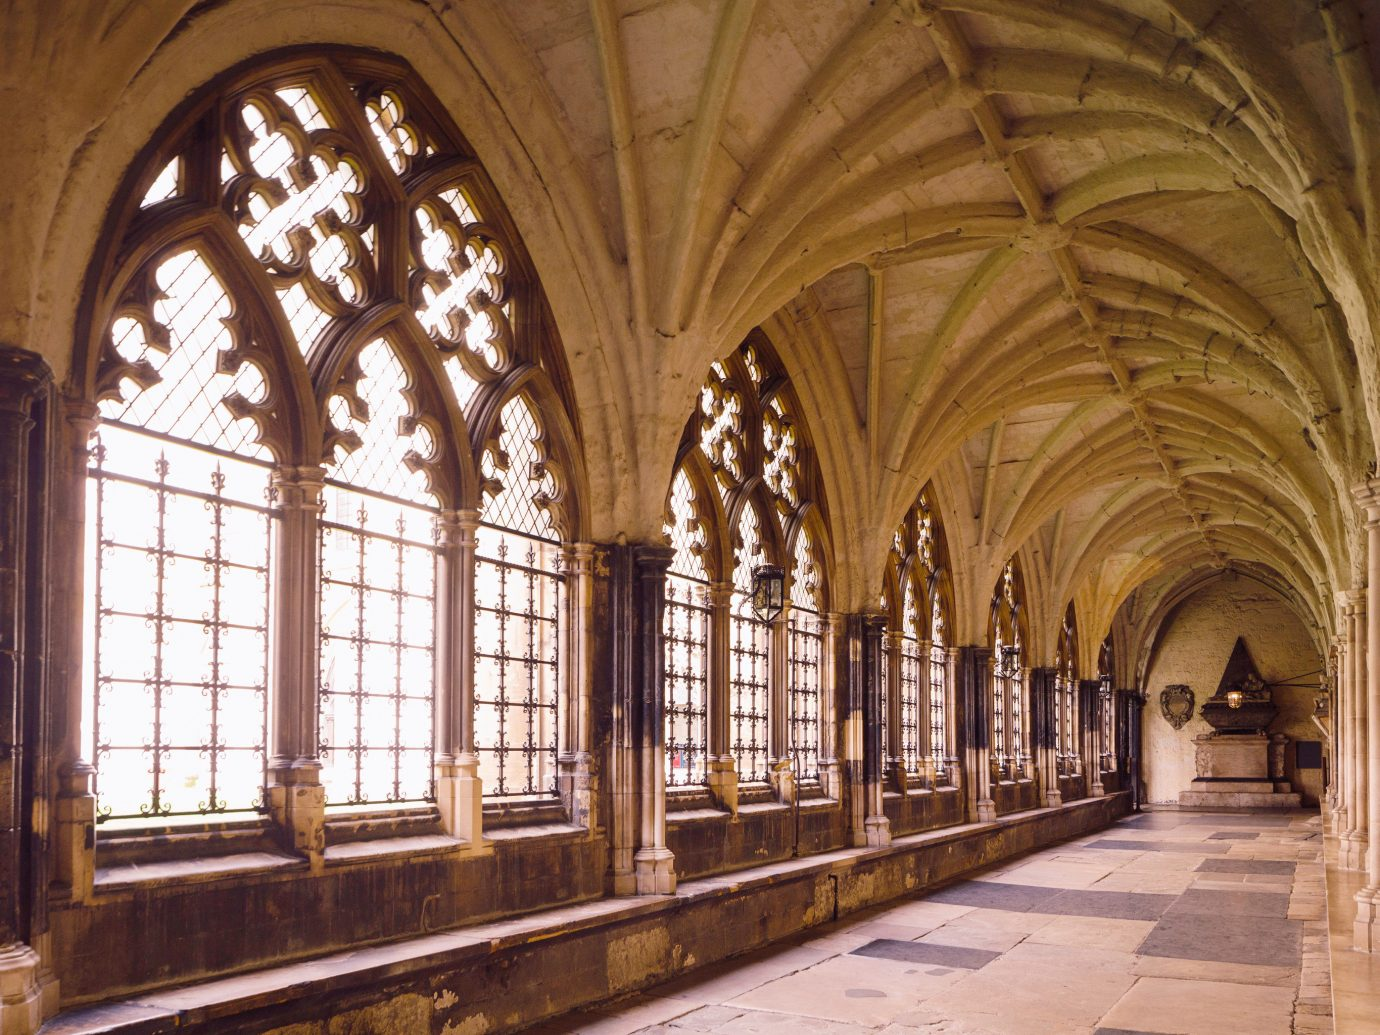 Budget Travel Tips Trip Ideas indoor building arch Architecture place of worship arcade cathedral monastery ancient history chapel Church gothic architecture abbey symmetry aisle estate palace court colonnade